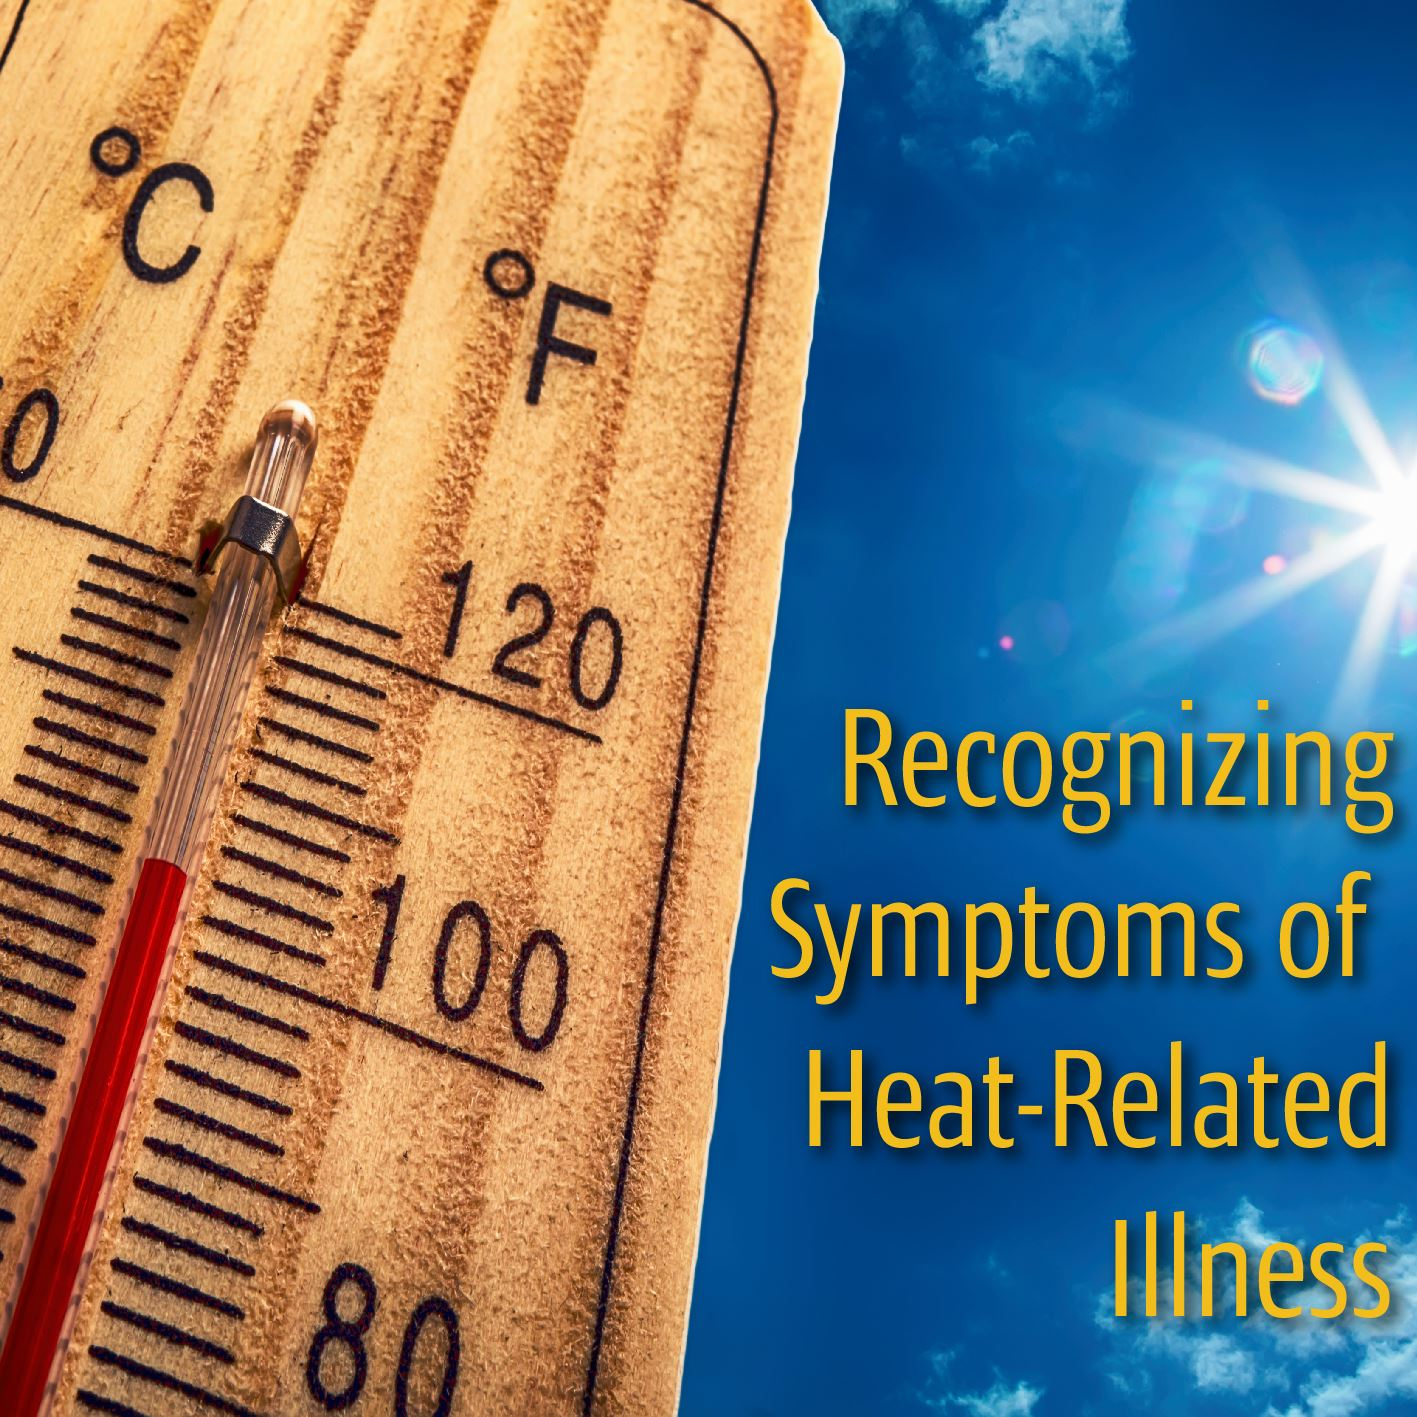 Recognizing Symptoms of Heat Related Illness/ Thermometer showing high temperature.